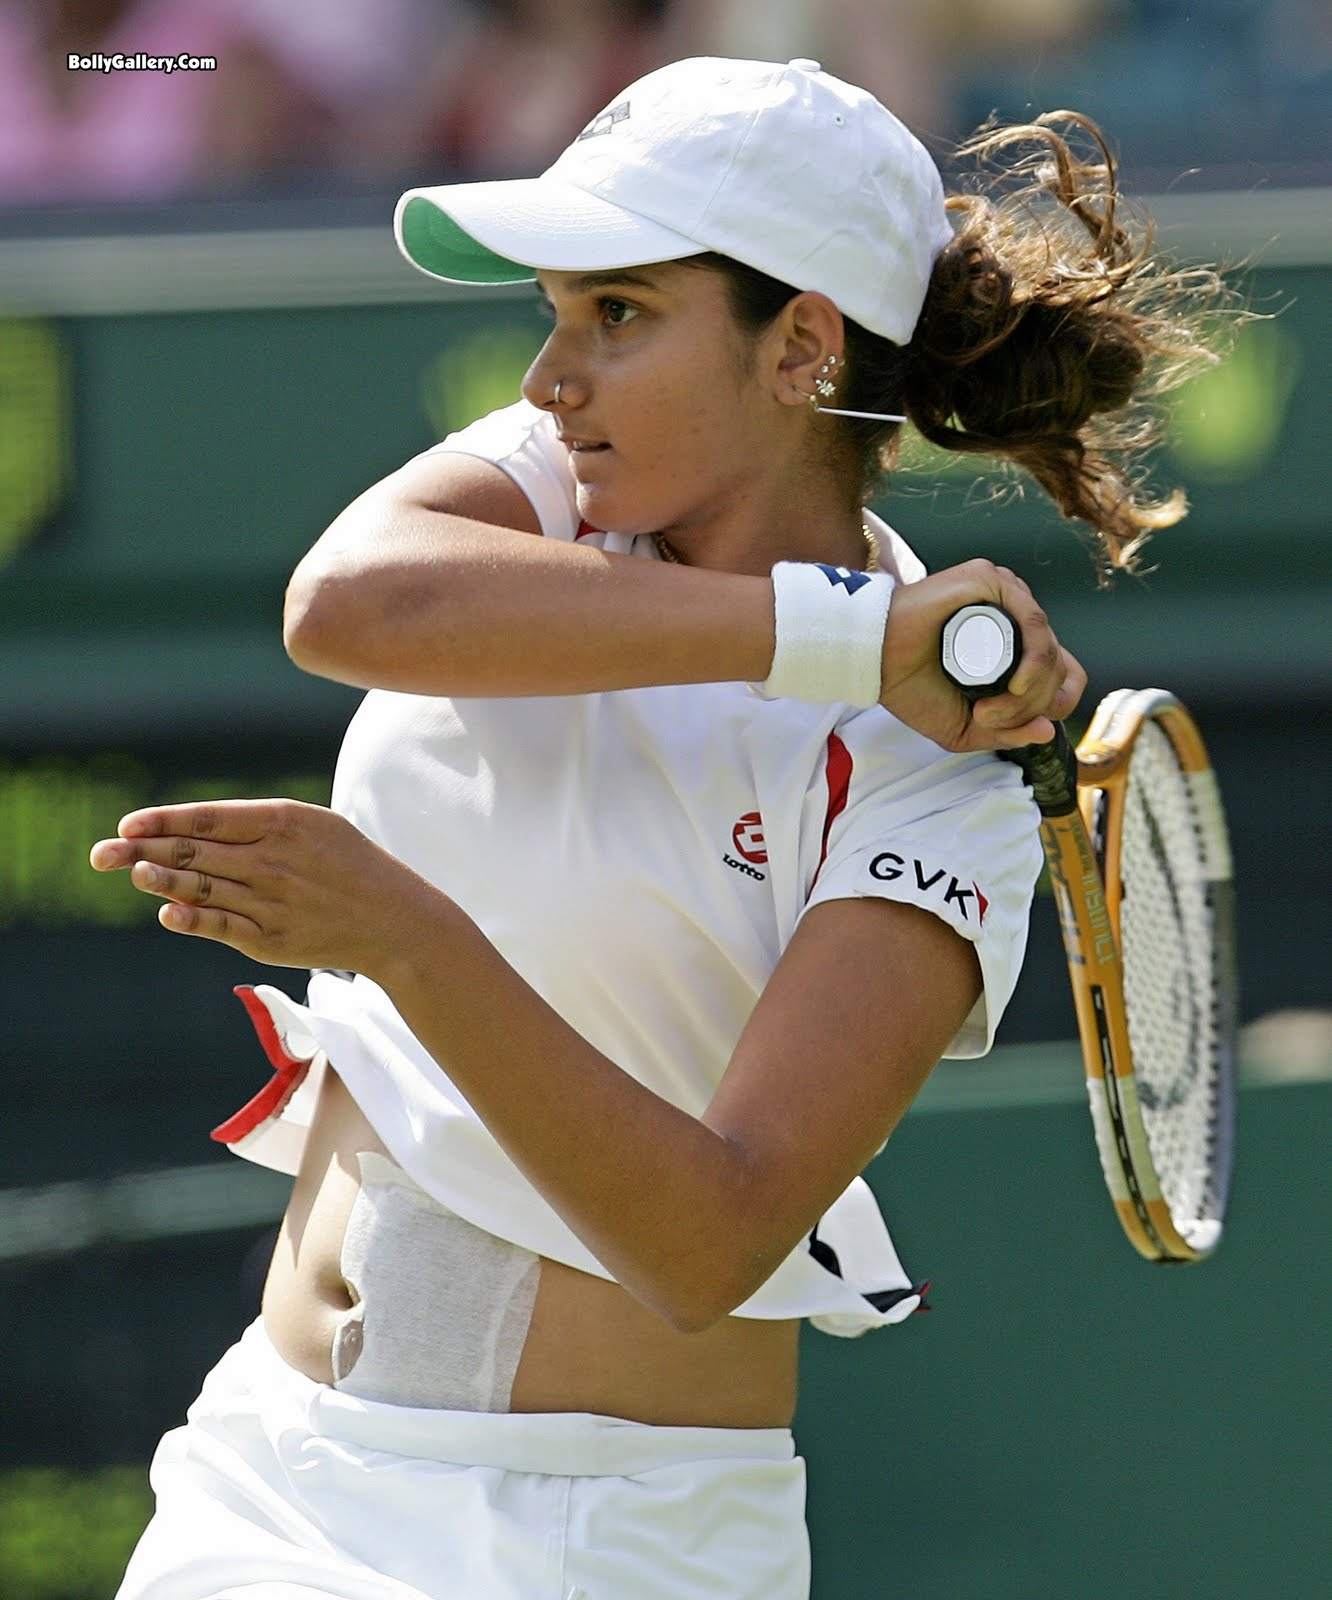 Download Free Images For Indian Tennis Star Sania Mirza -7875